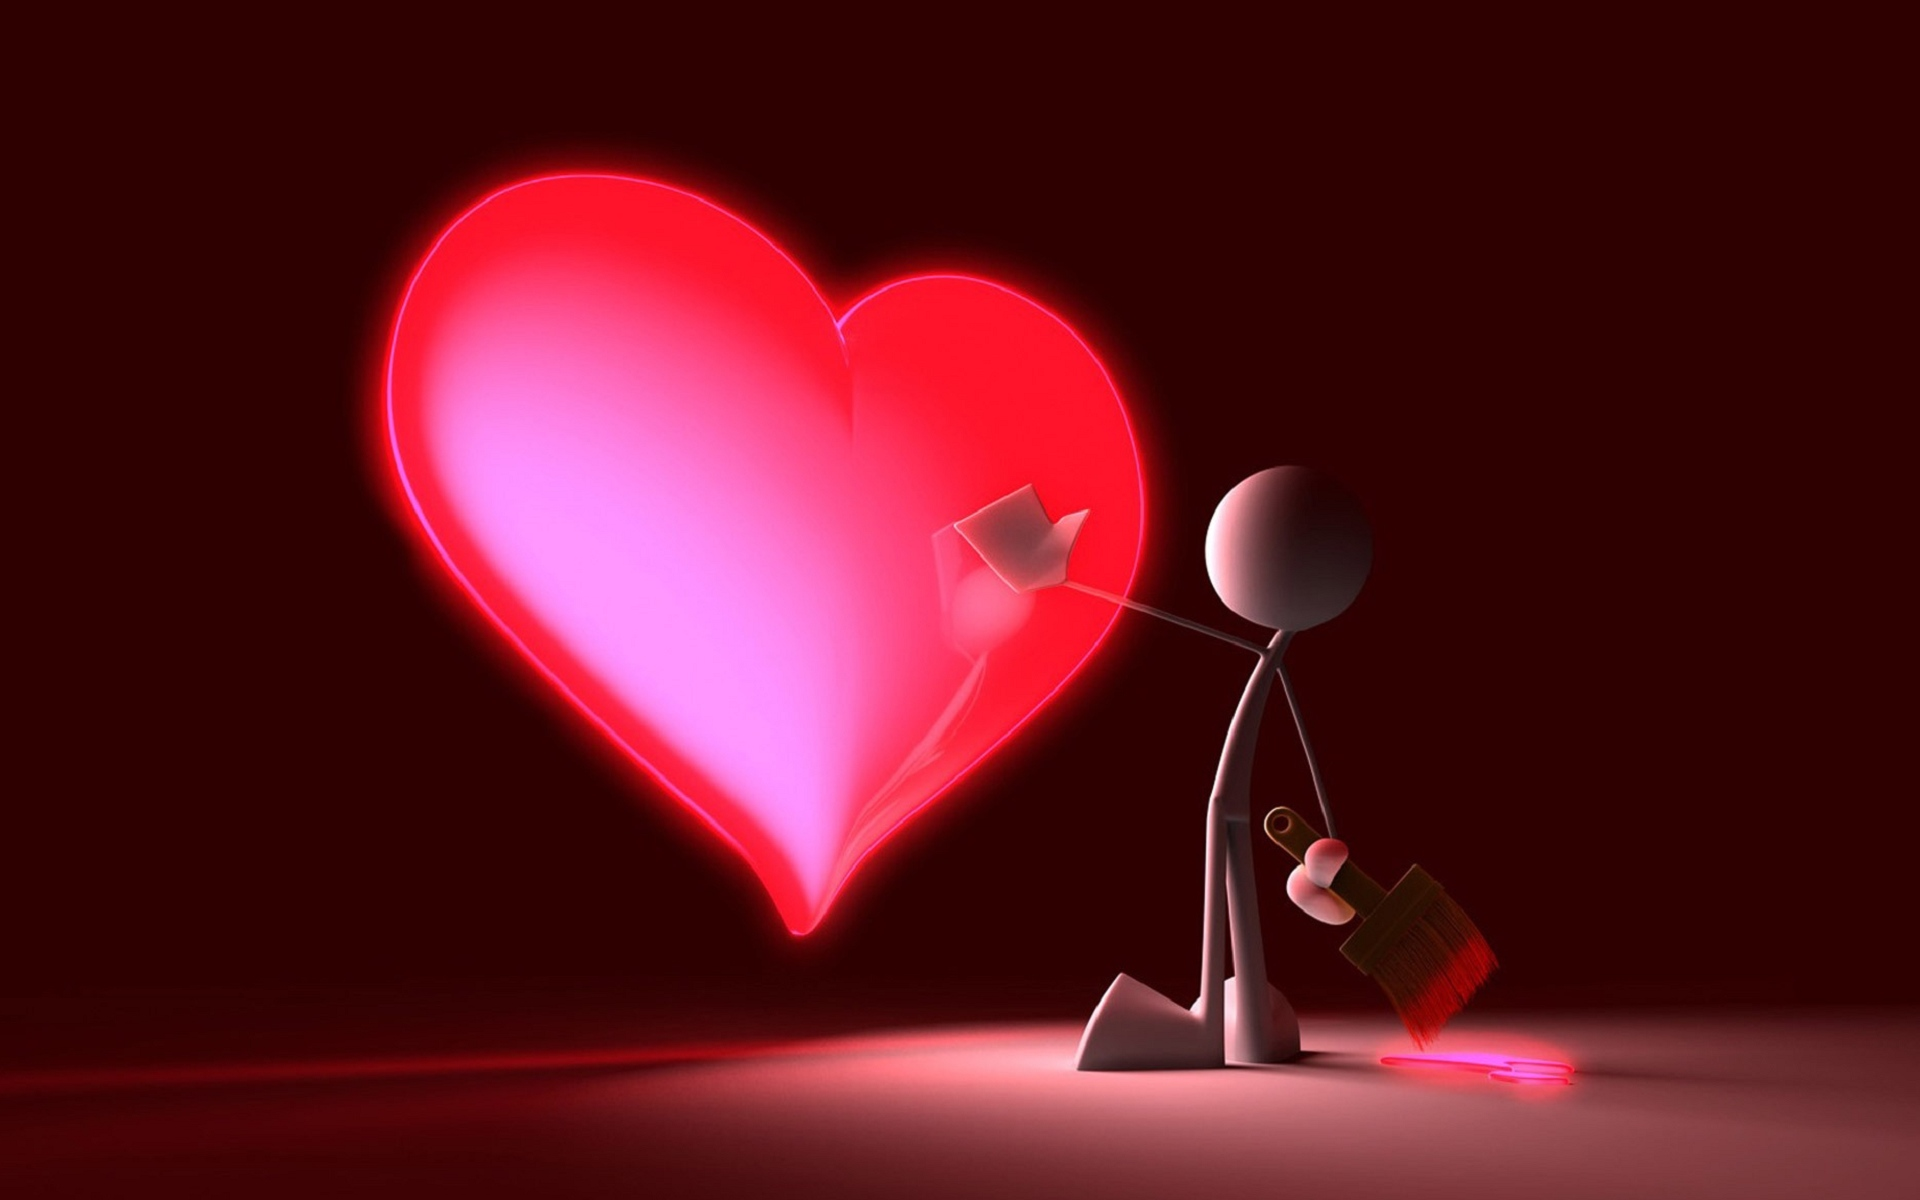 love heart 3d wallpaper | hd latest wallpapers